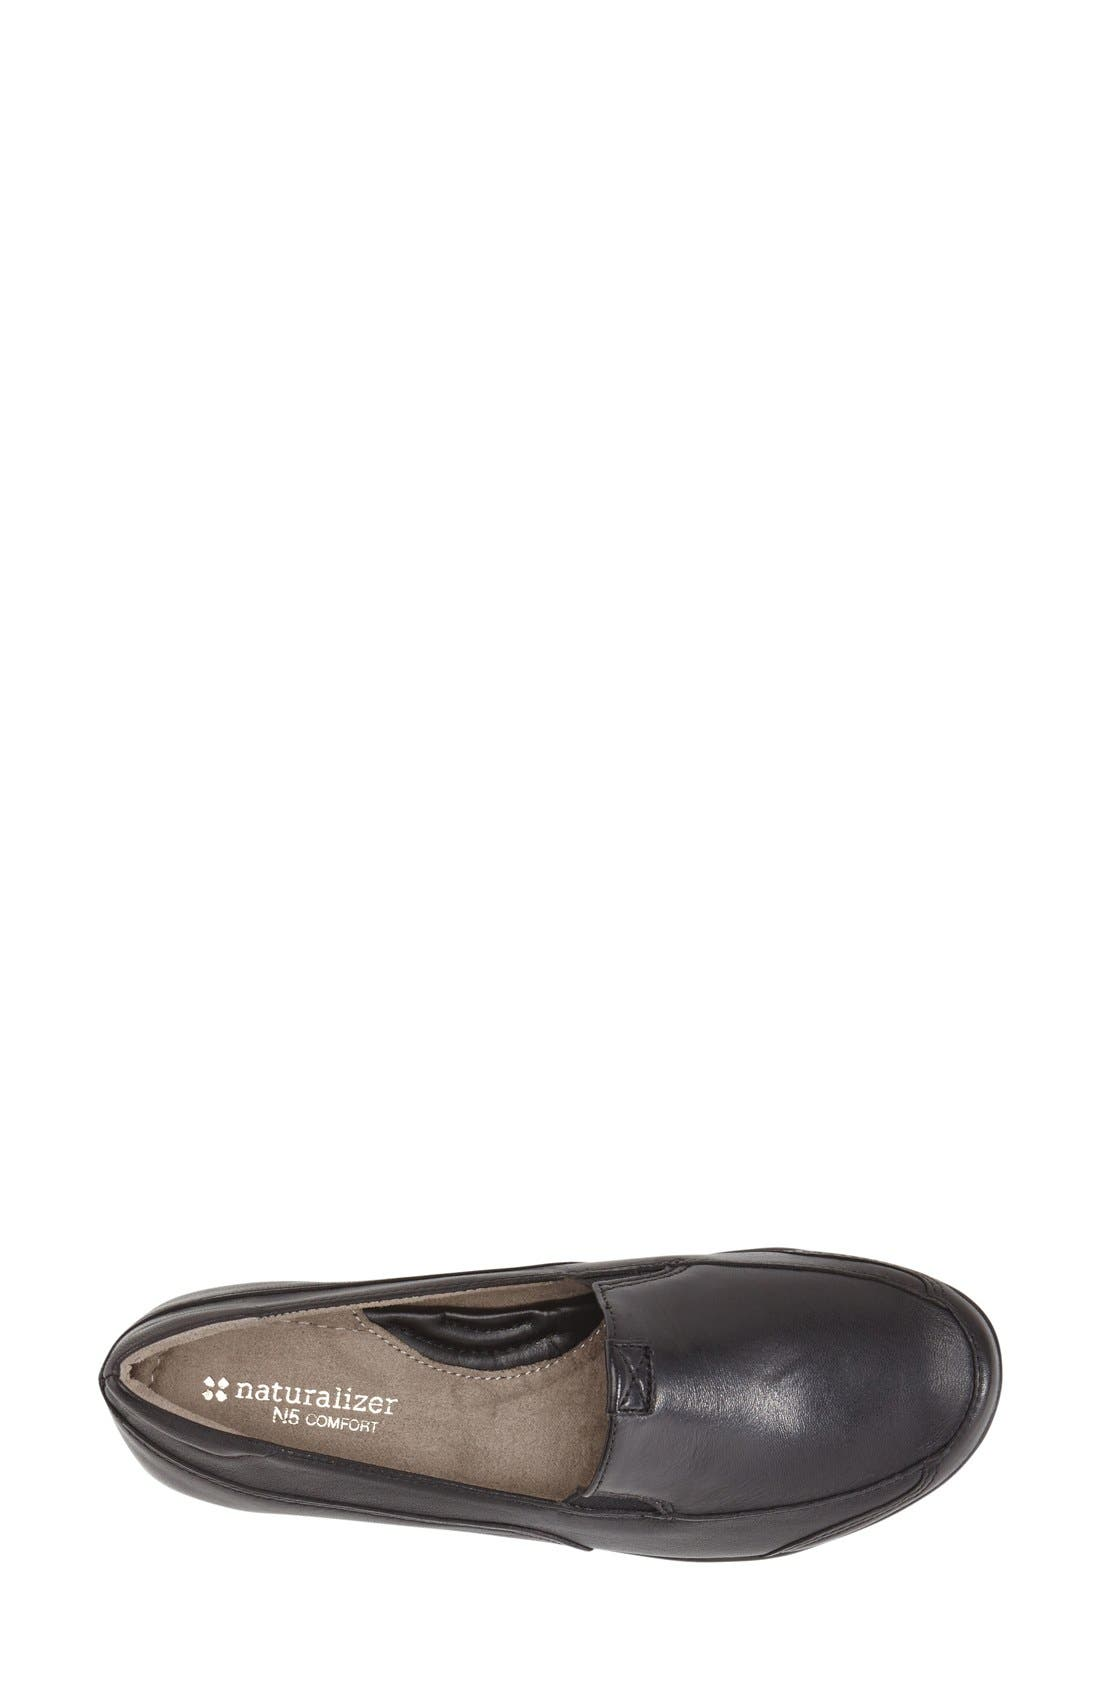 Alternate Image 3  - Naturalizer 'Channing' Loafer (Women)